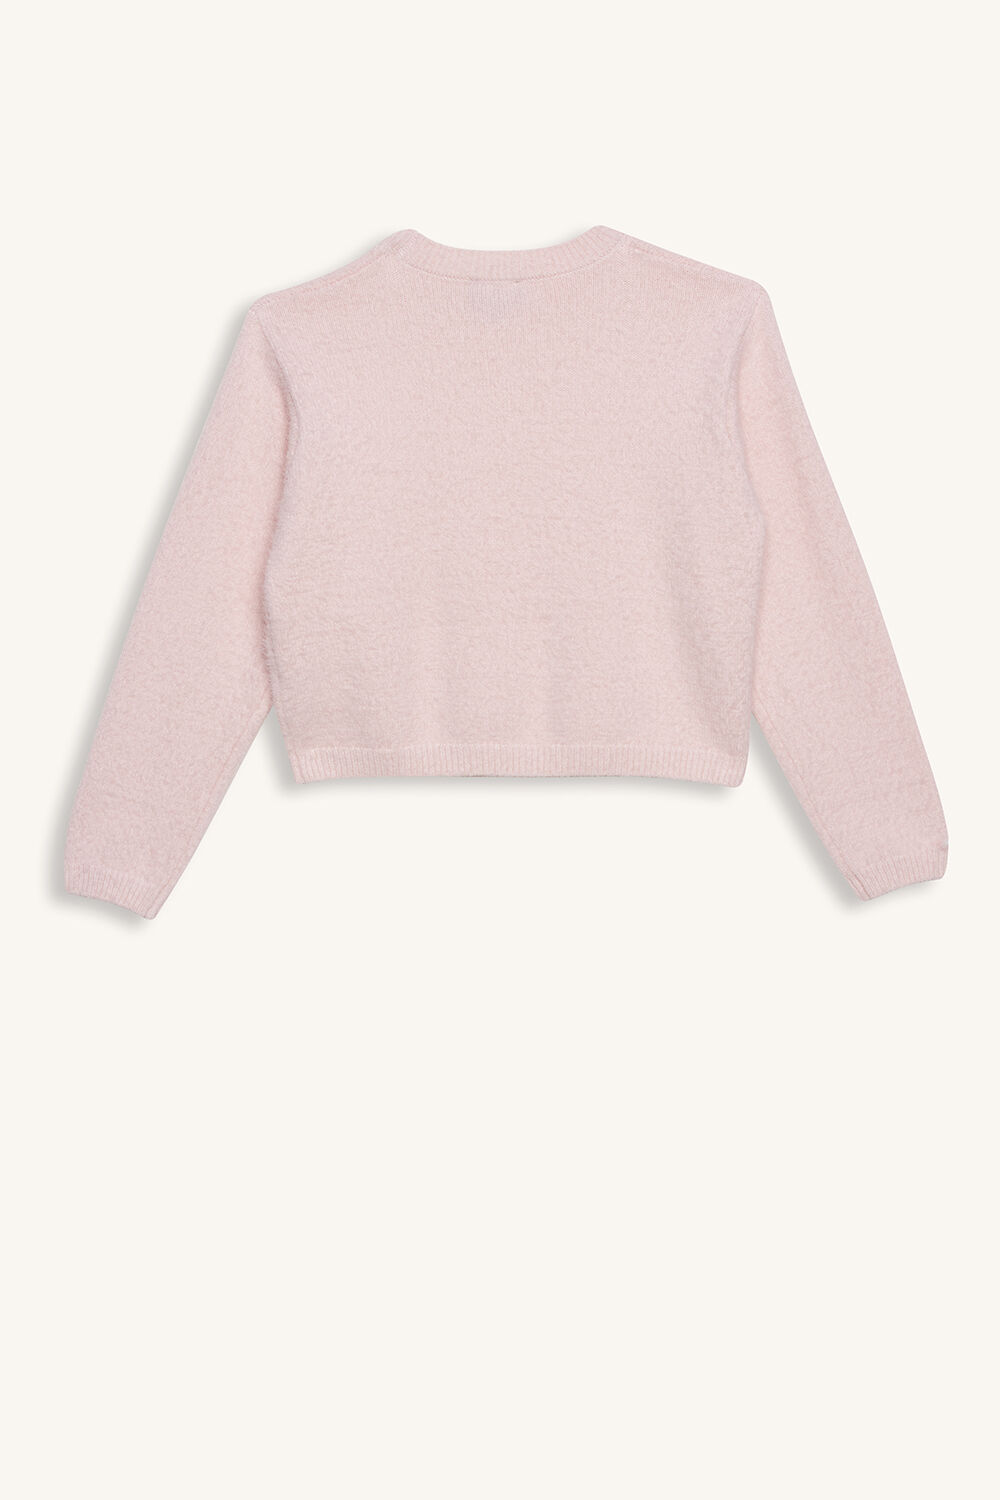 CROPPED FLUFFY KNIT in colour PRIMROSE PINK